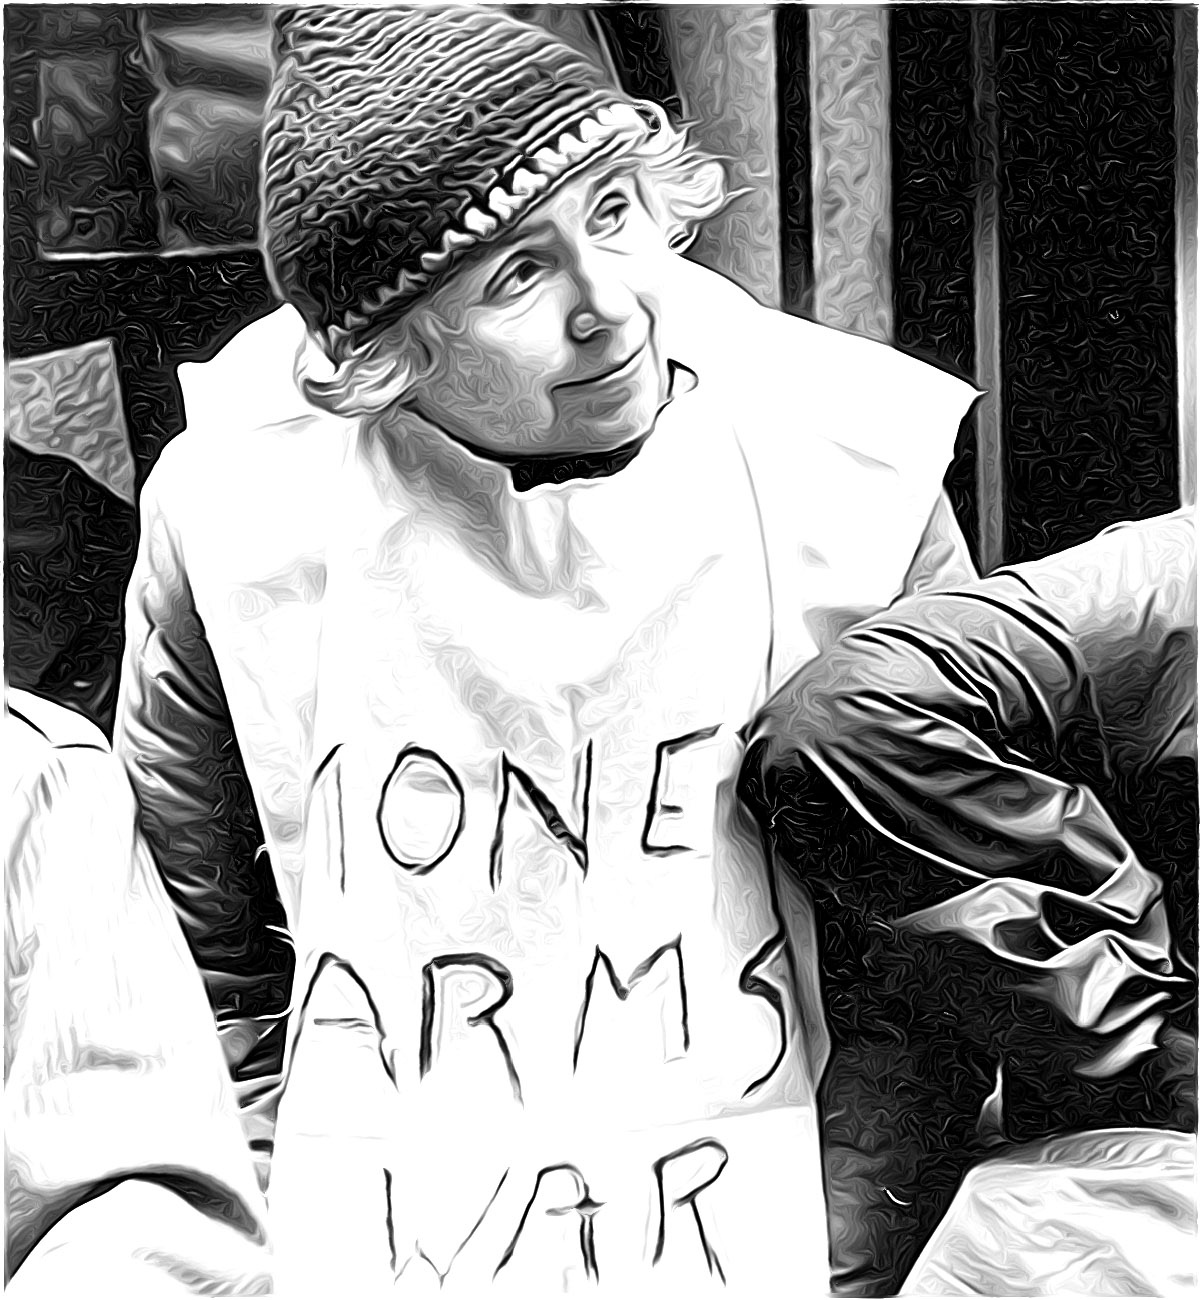 Grace Paley protesting the war economy